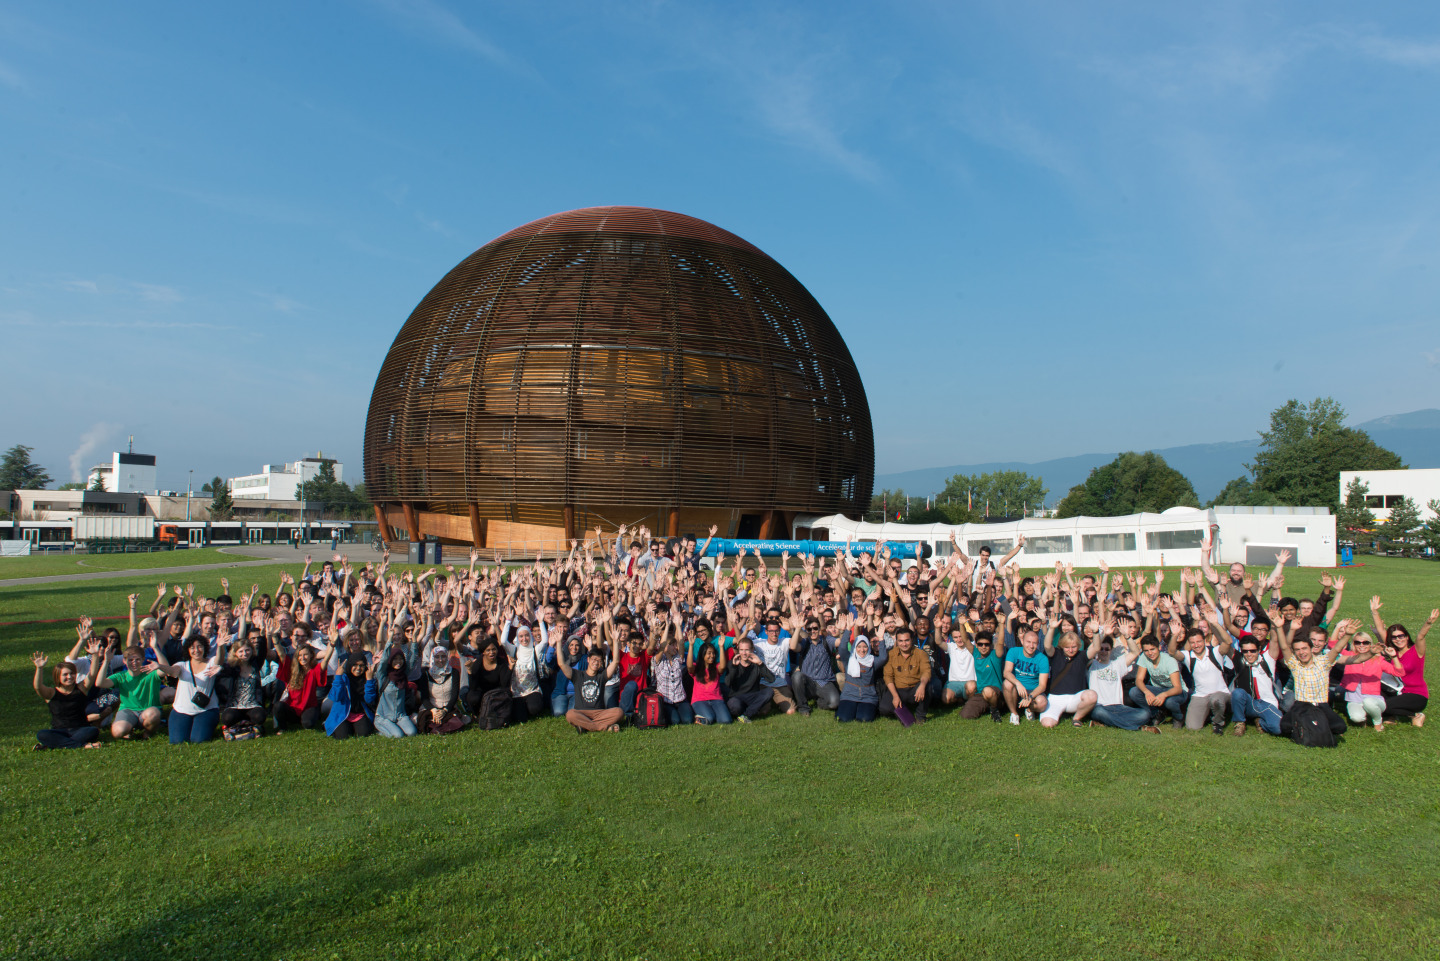 A way back in the cern post career break fellowship f6dc1da1 2d48 4e58 ba7b 49ebcd777049